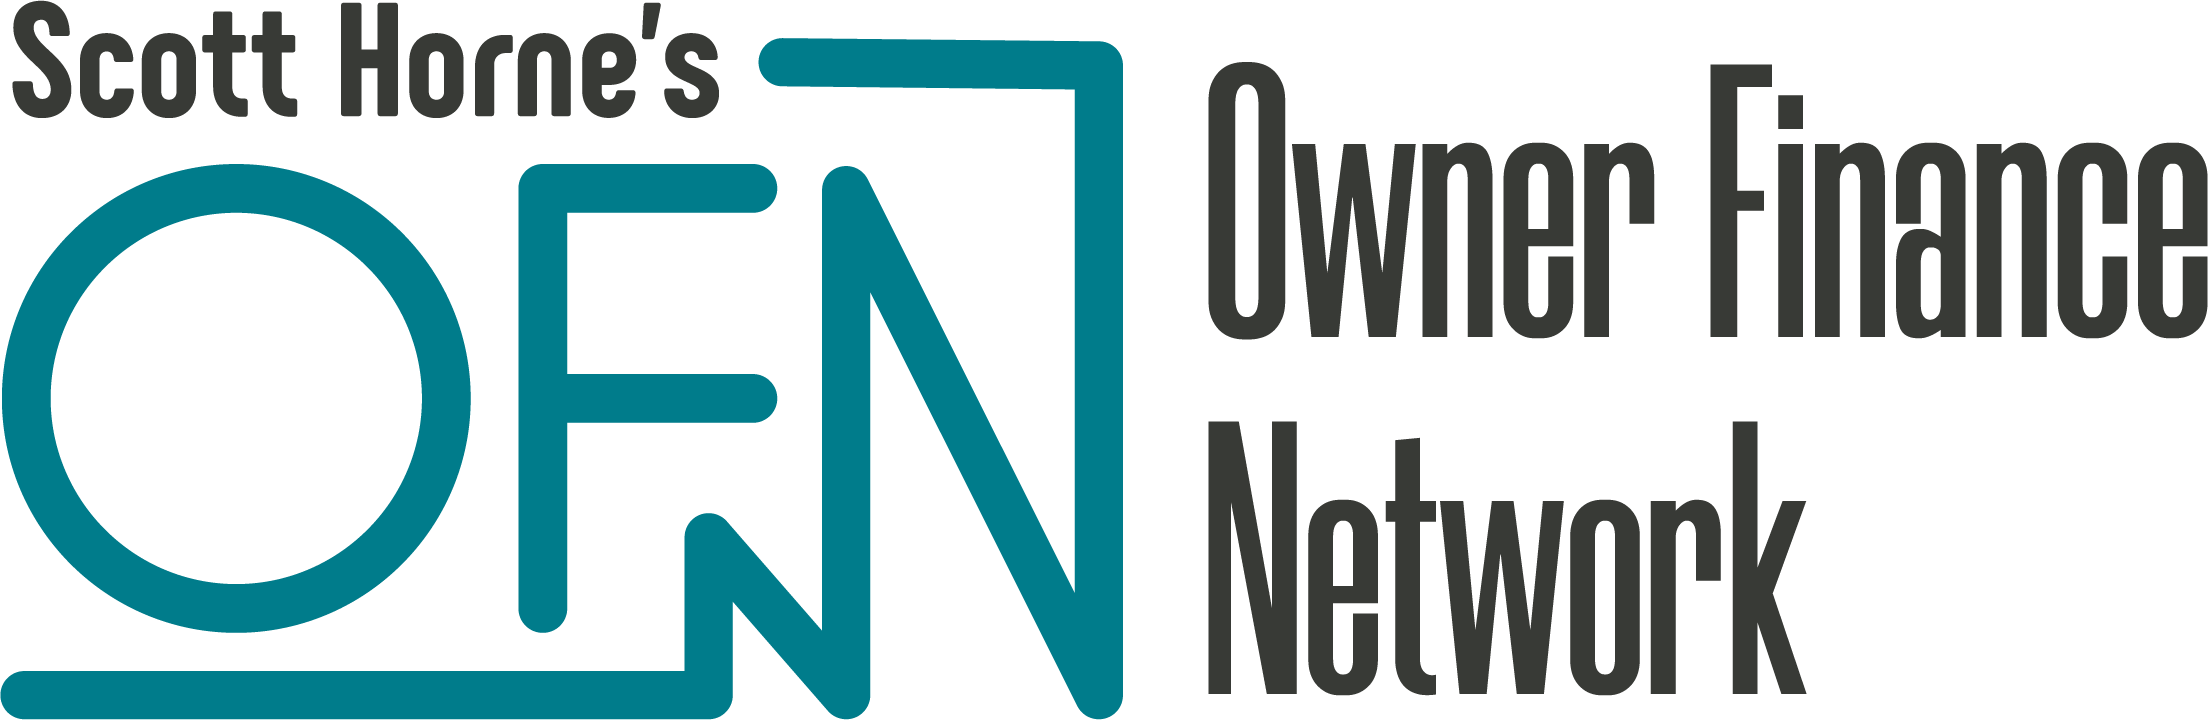 Owner Finance Network